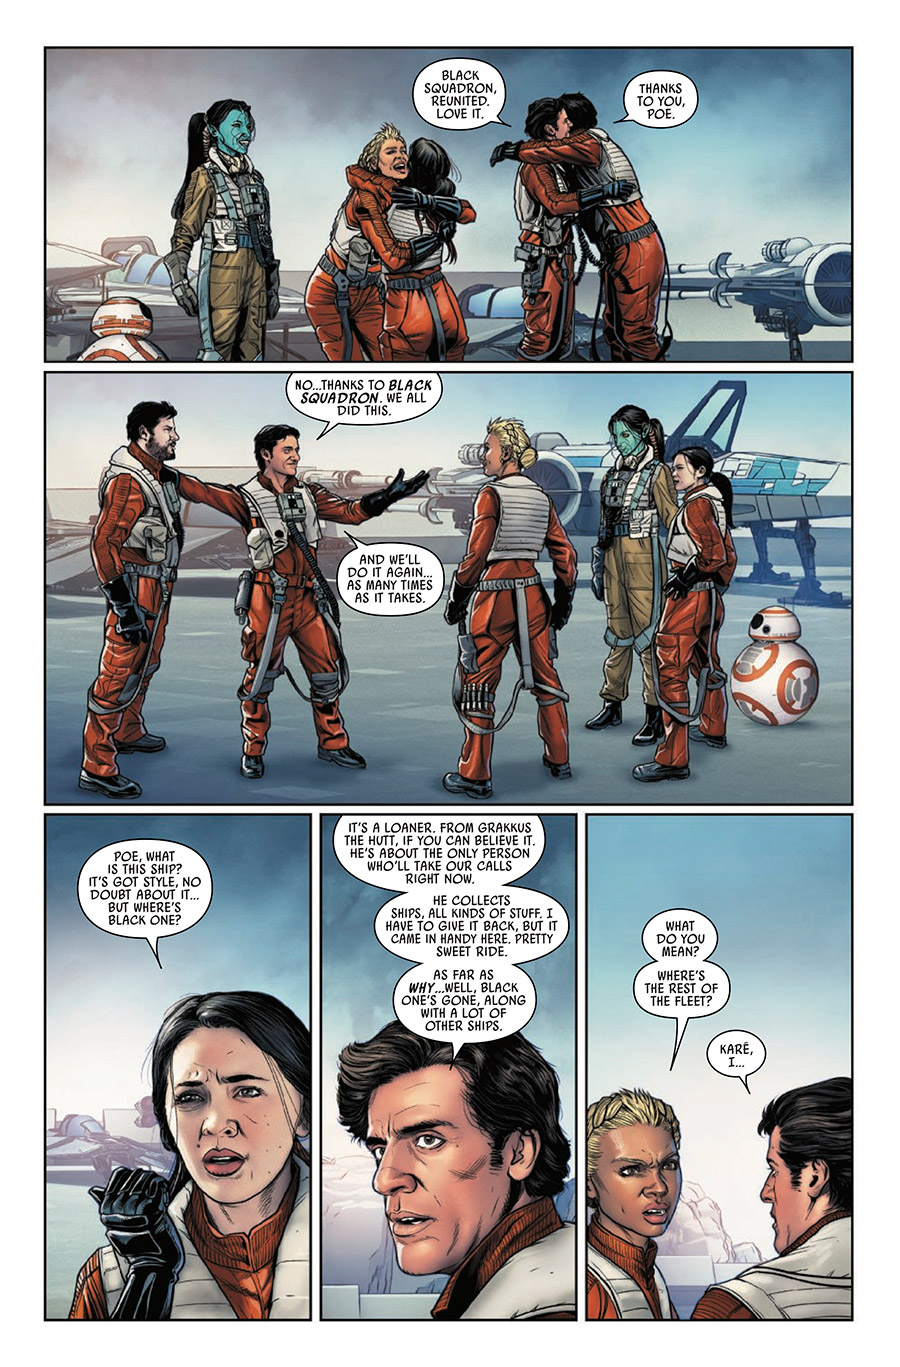 Page 32 from Poe Dameron #31.